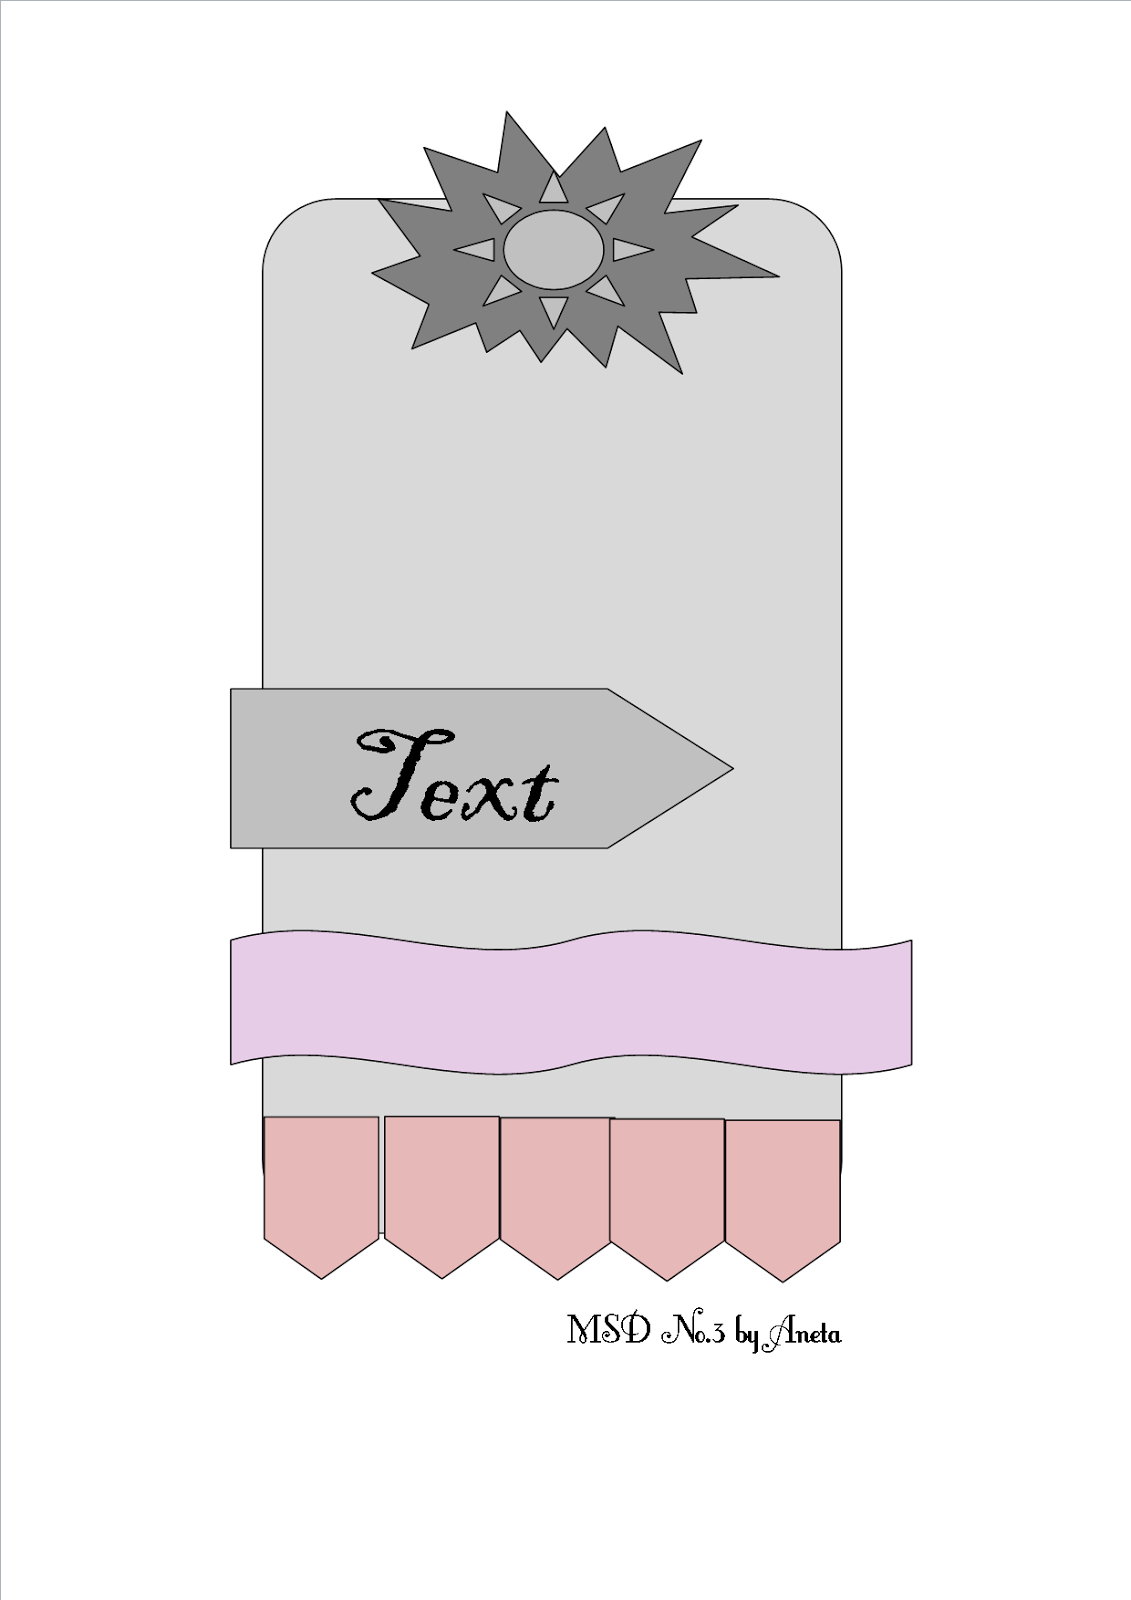 http://artisant2.blogspot.com/2014/10/how-to-make-halloween-tag-with-msd-by.html